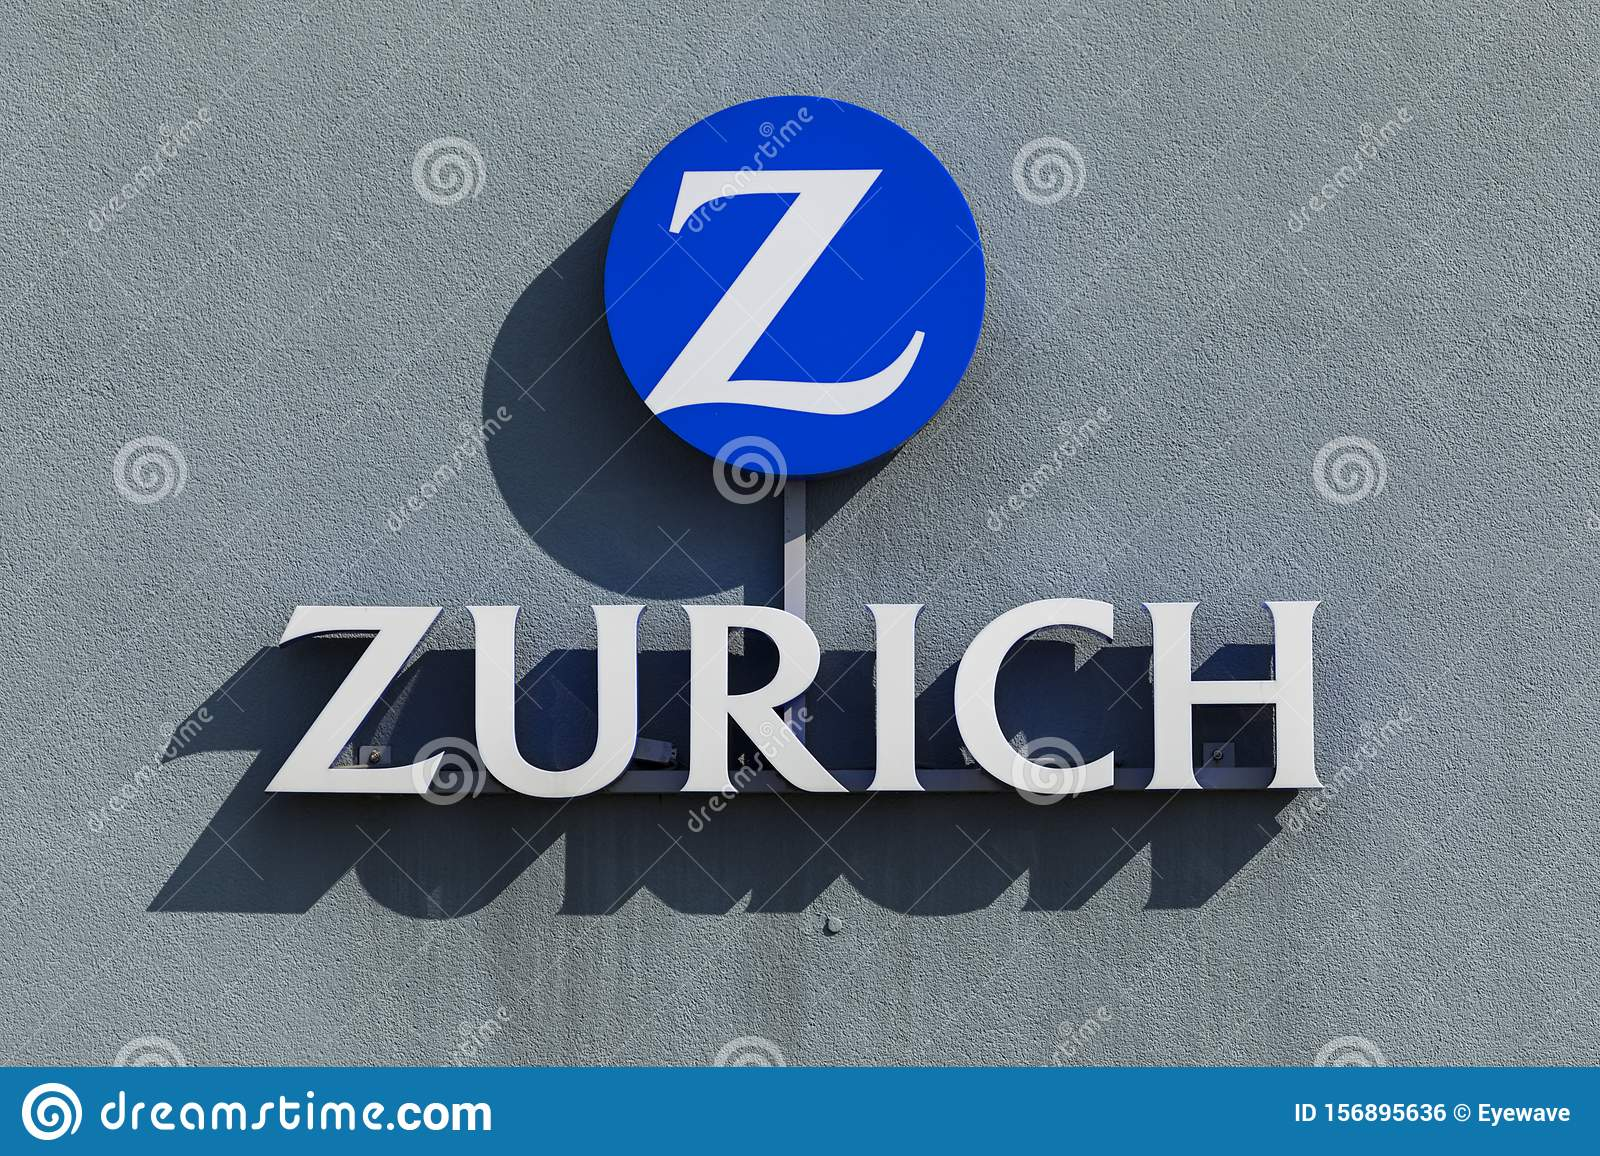 Zurich Insurance Company Logo At Wall Editorial Photo Image Of